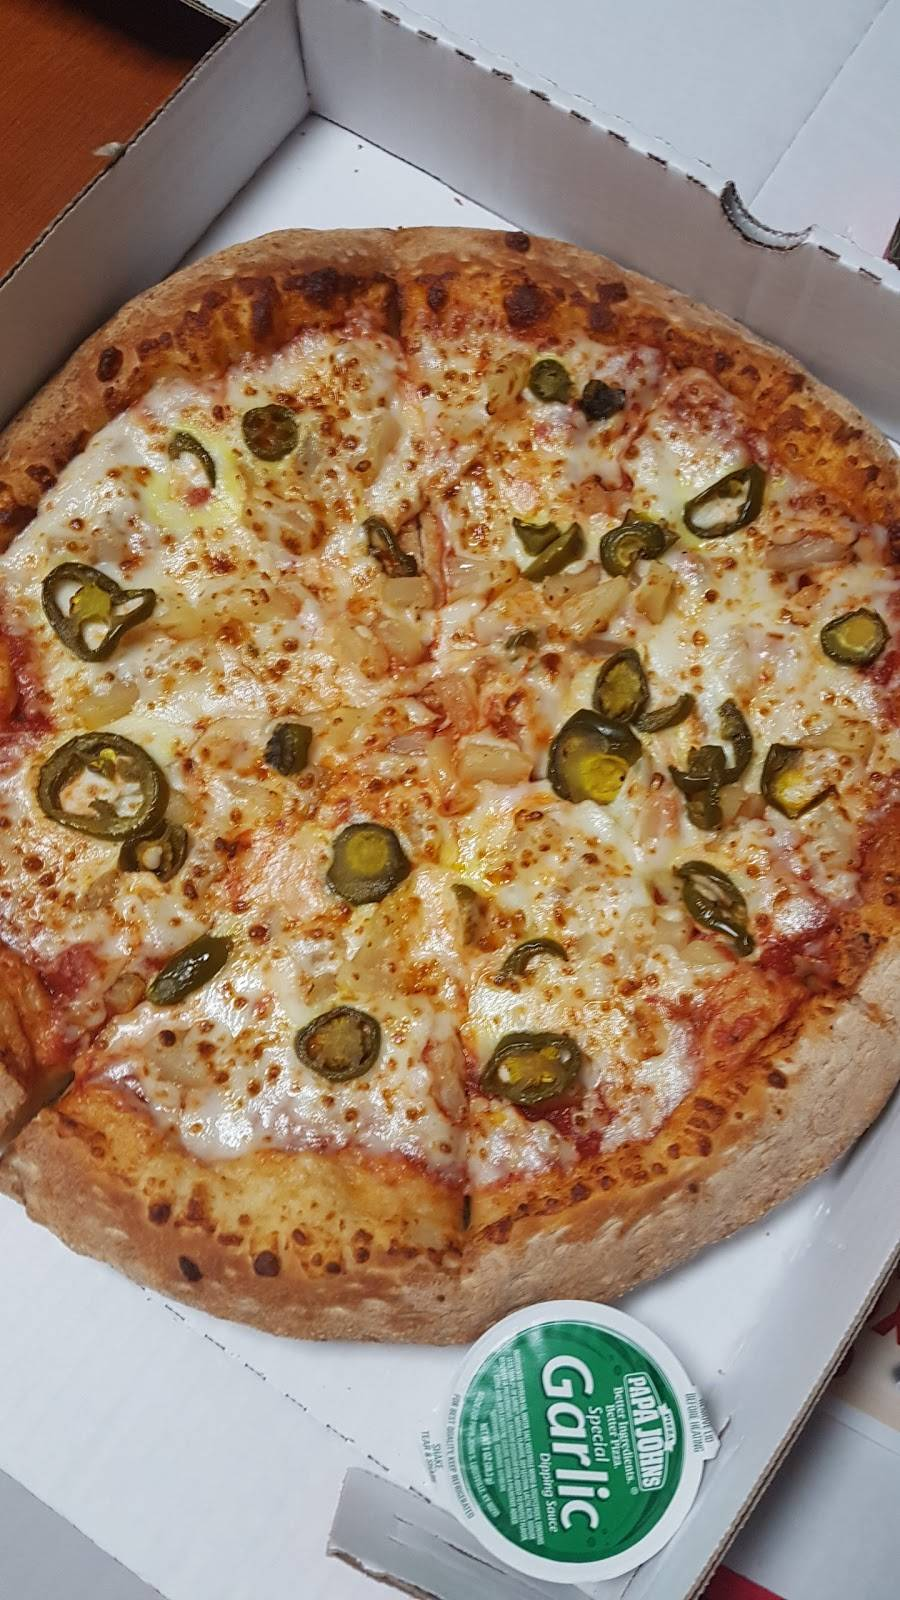 Papa Johns Pizza | restaurant | 580 32nd St, Union City, NJ 07087, USA | 2018617272 OR +1 201-861-7272